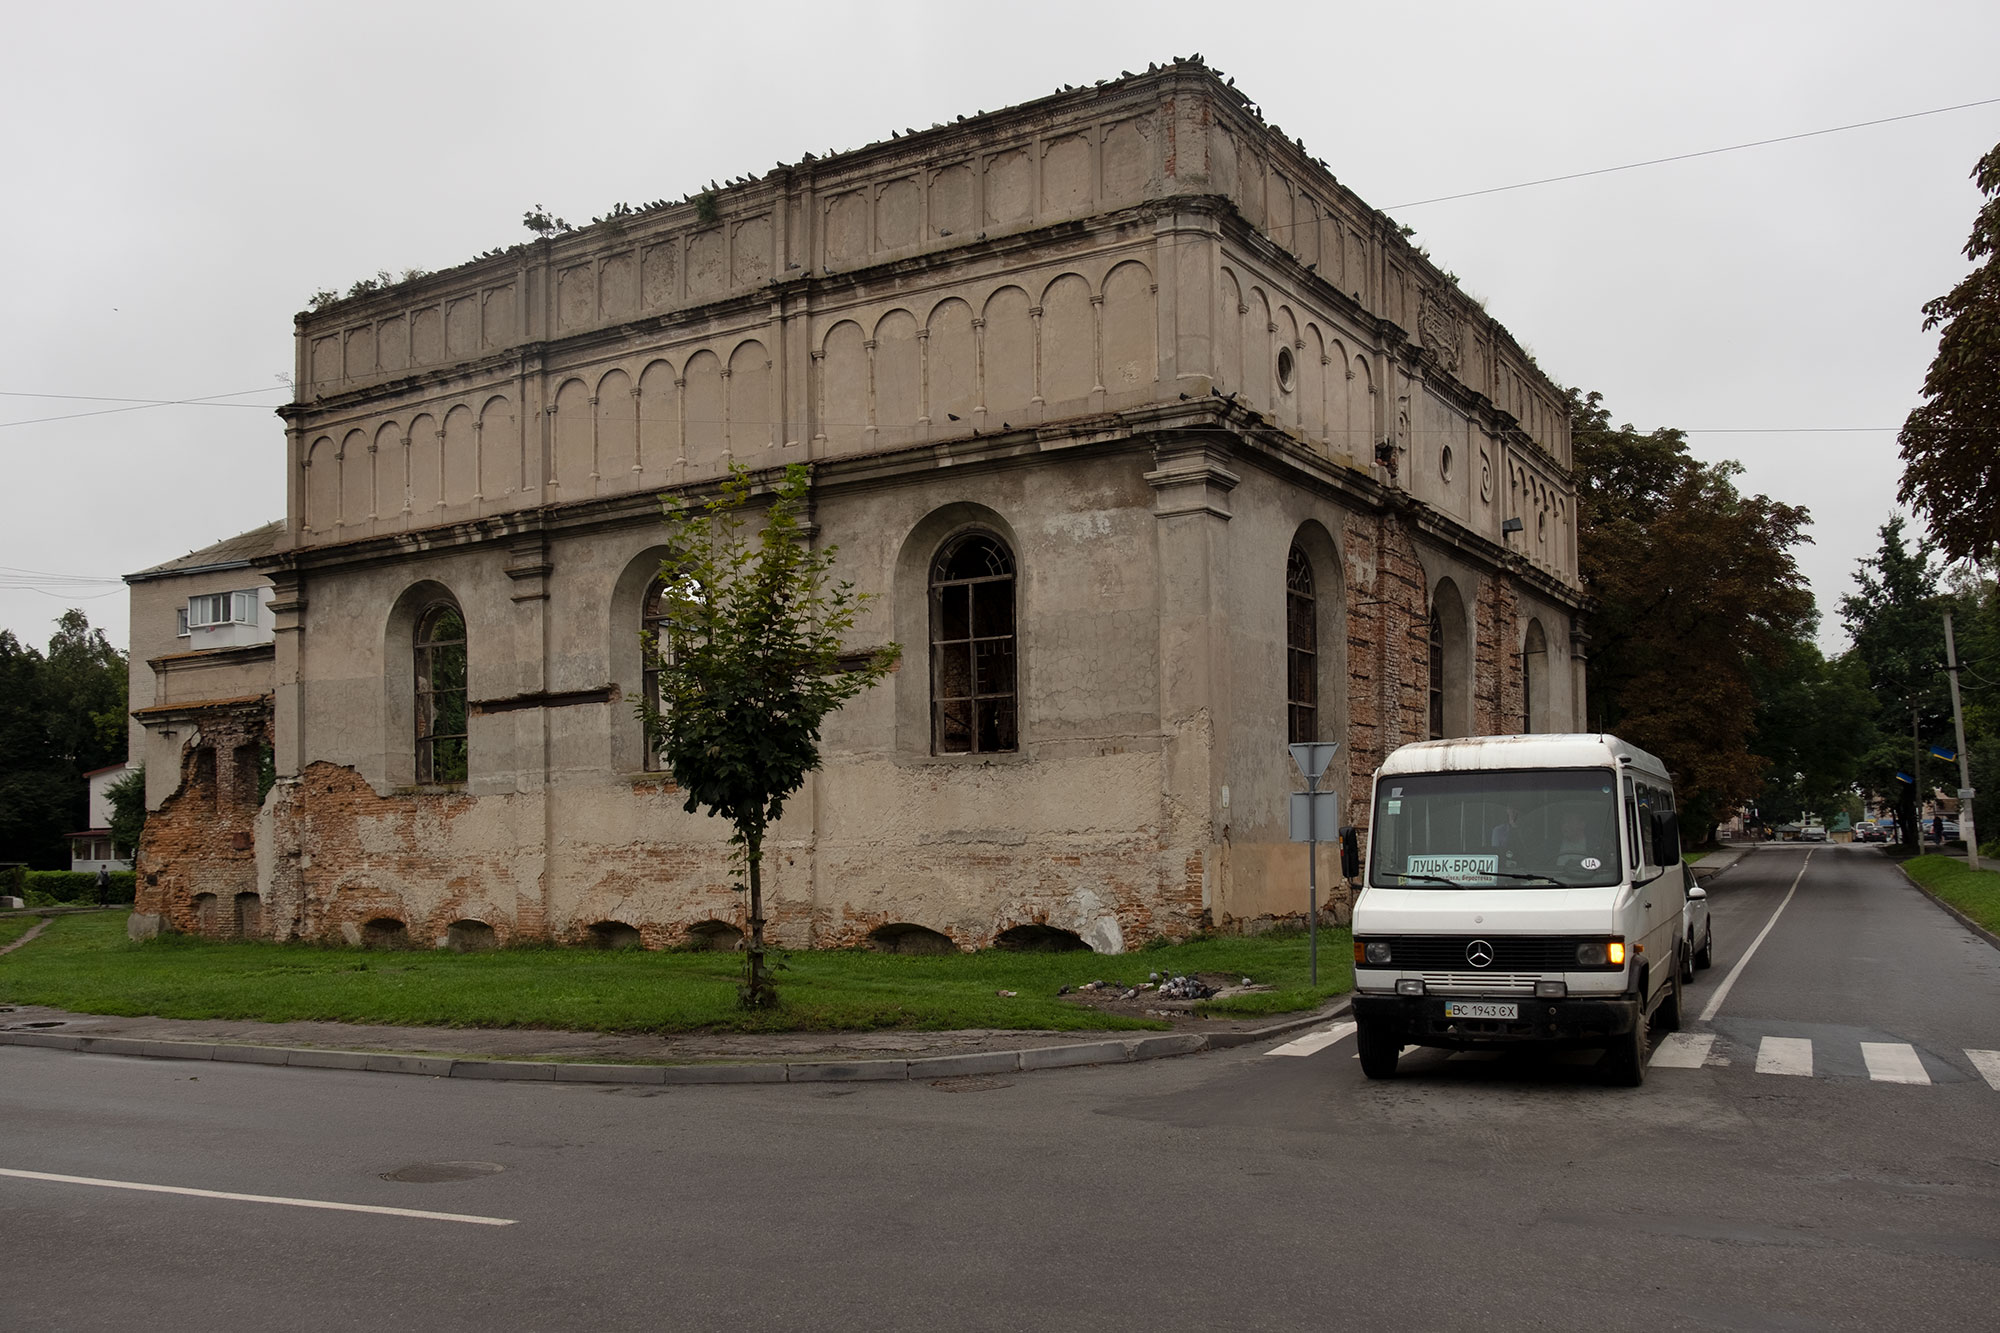 Brody - Great Synagogue